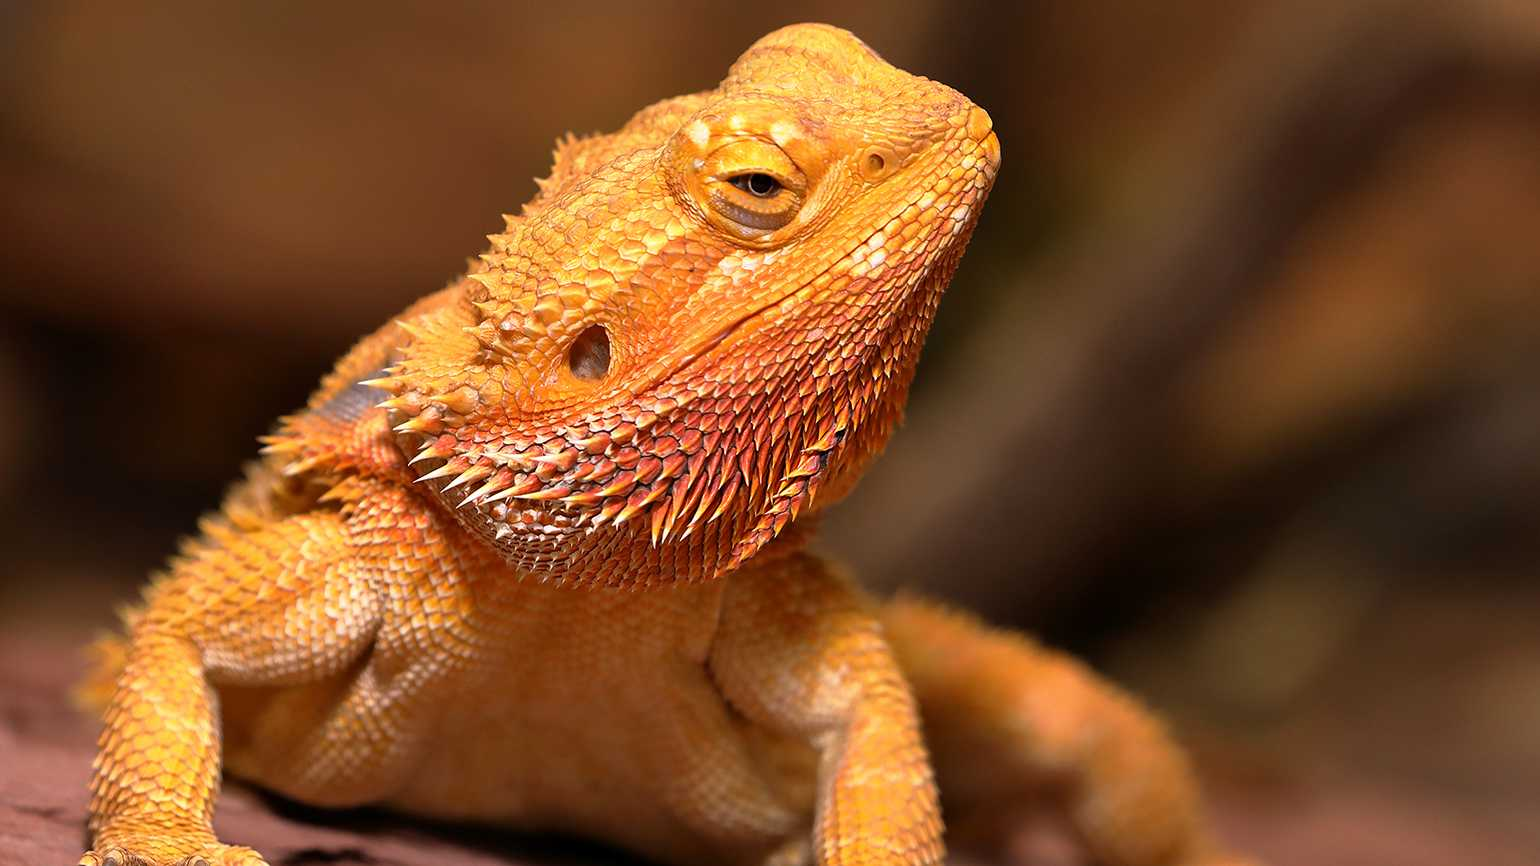 A bearded dragon